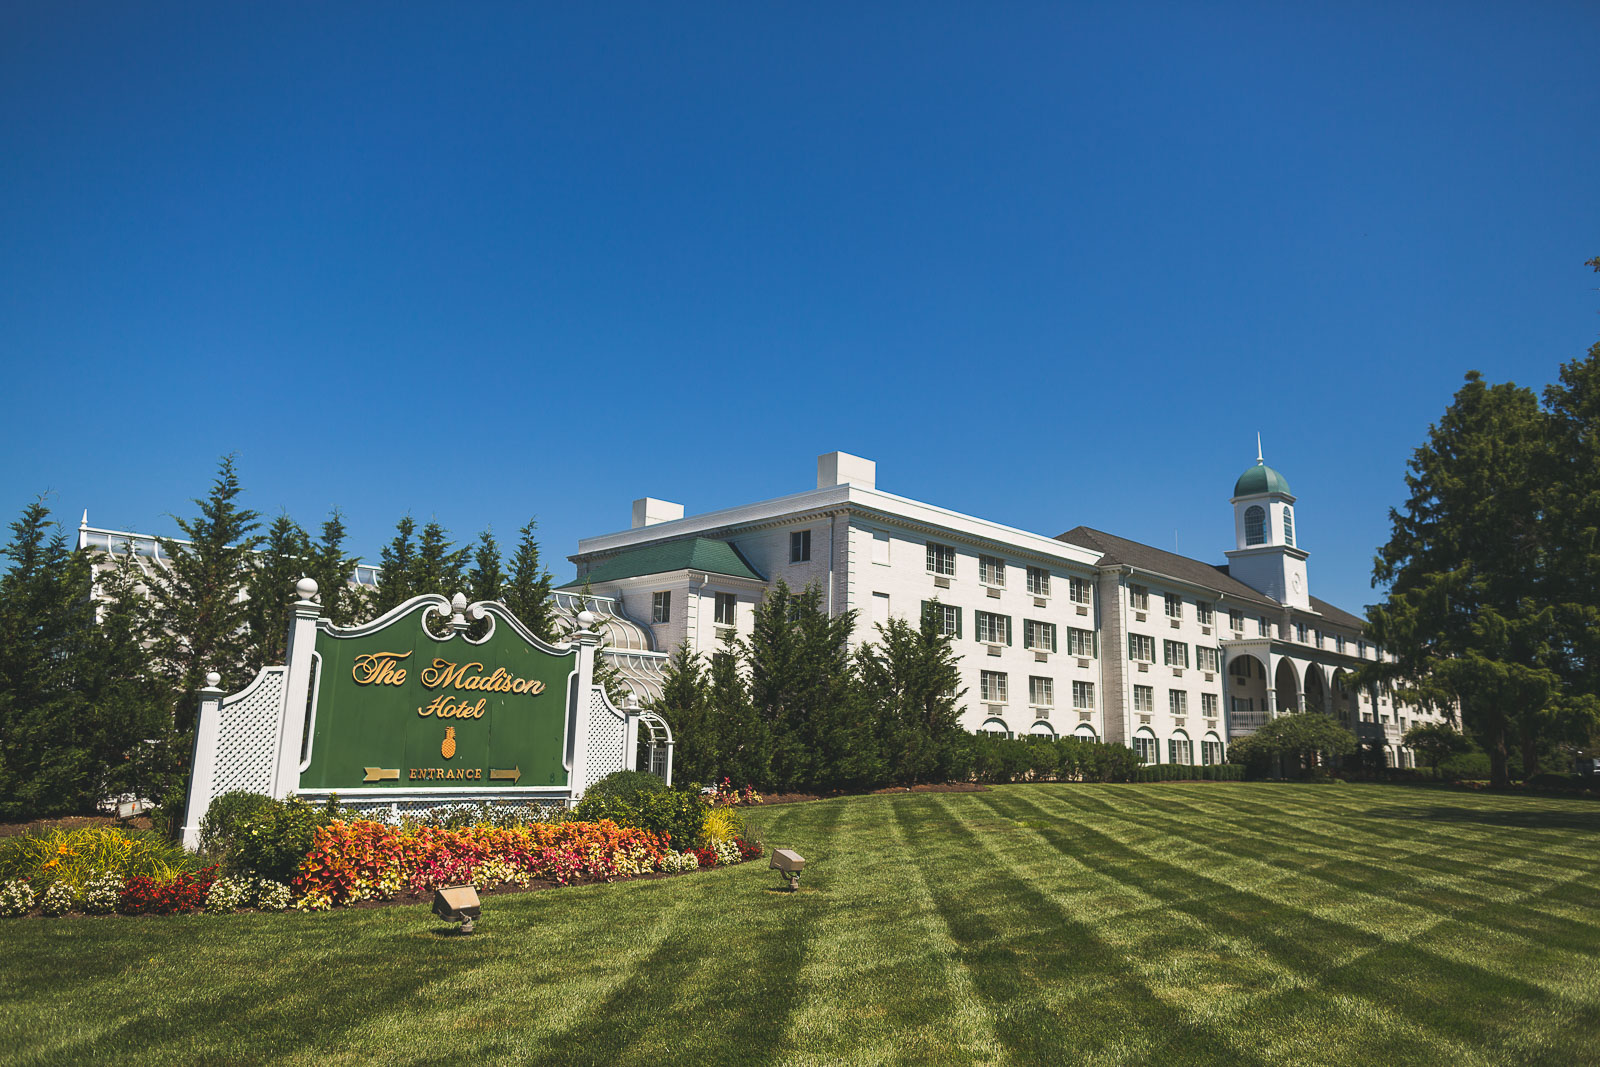 The Madison Hotel Morristown, New Jersey